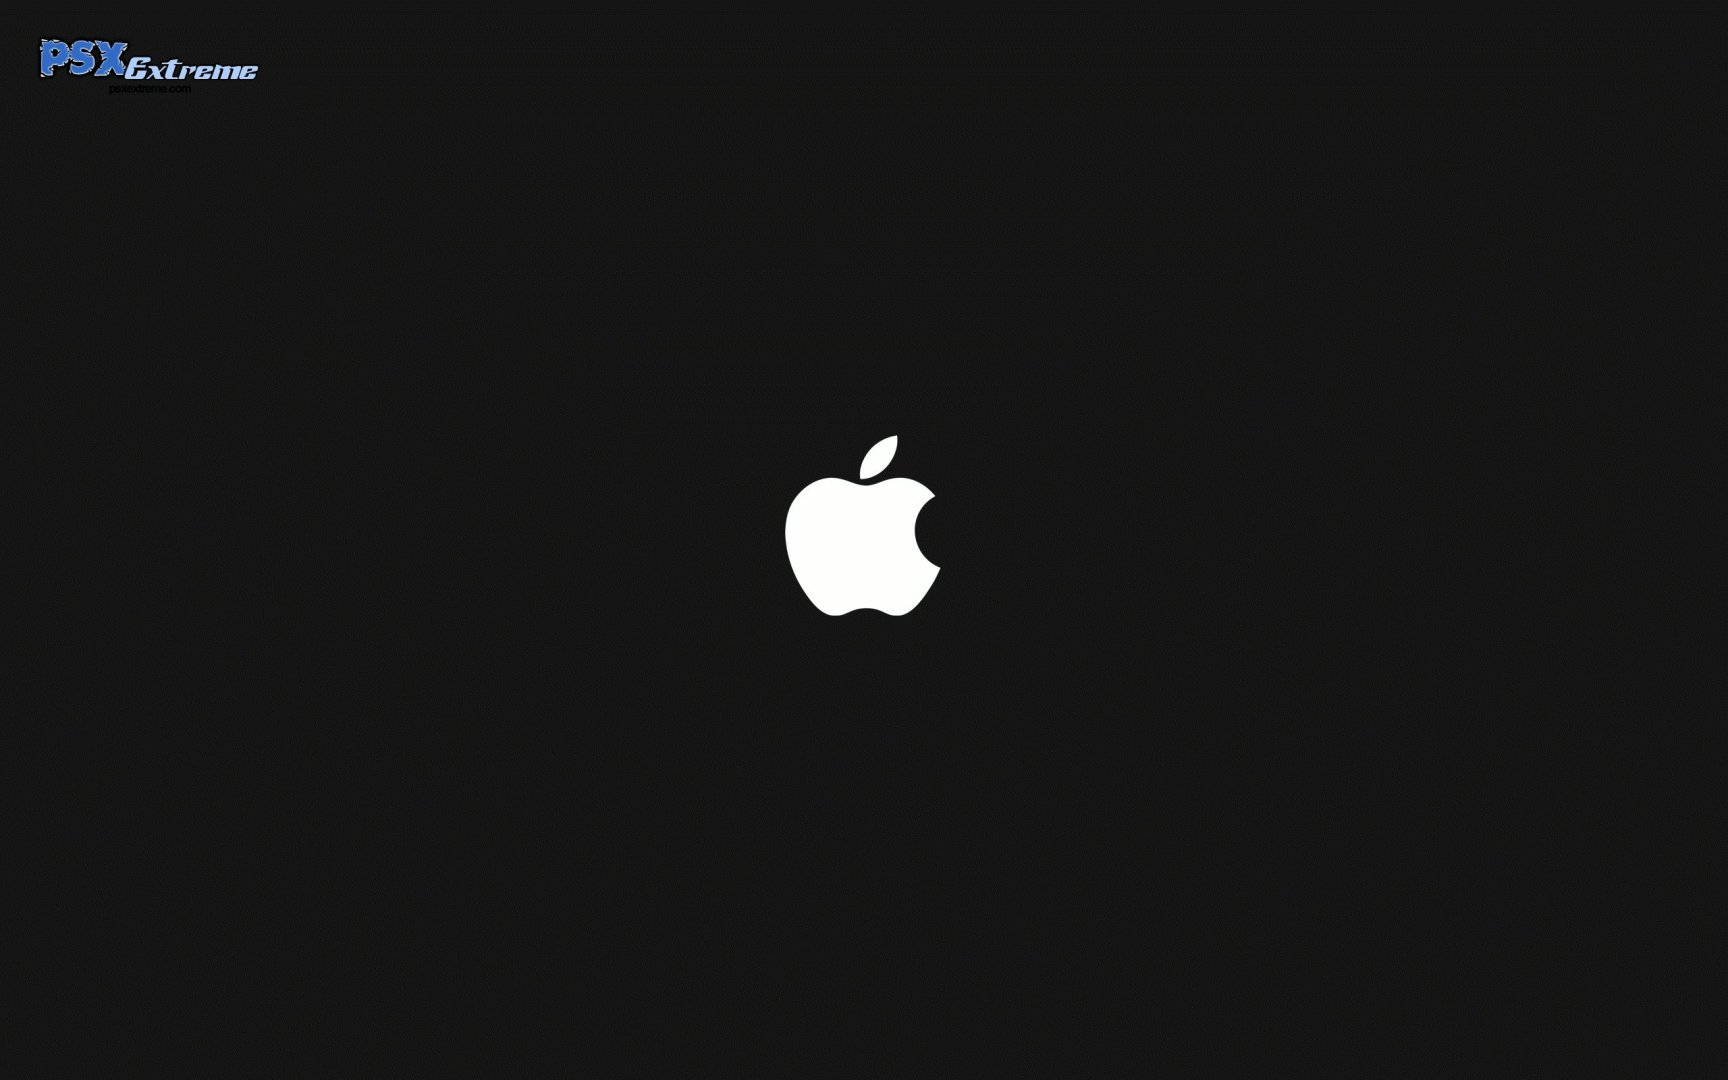 Black White Wallpaper Black Apple Logo Wallpapers 1728x1080